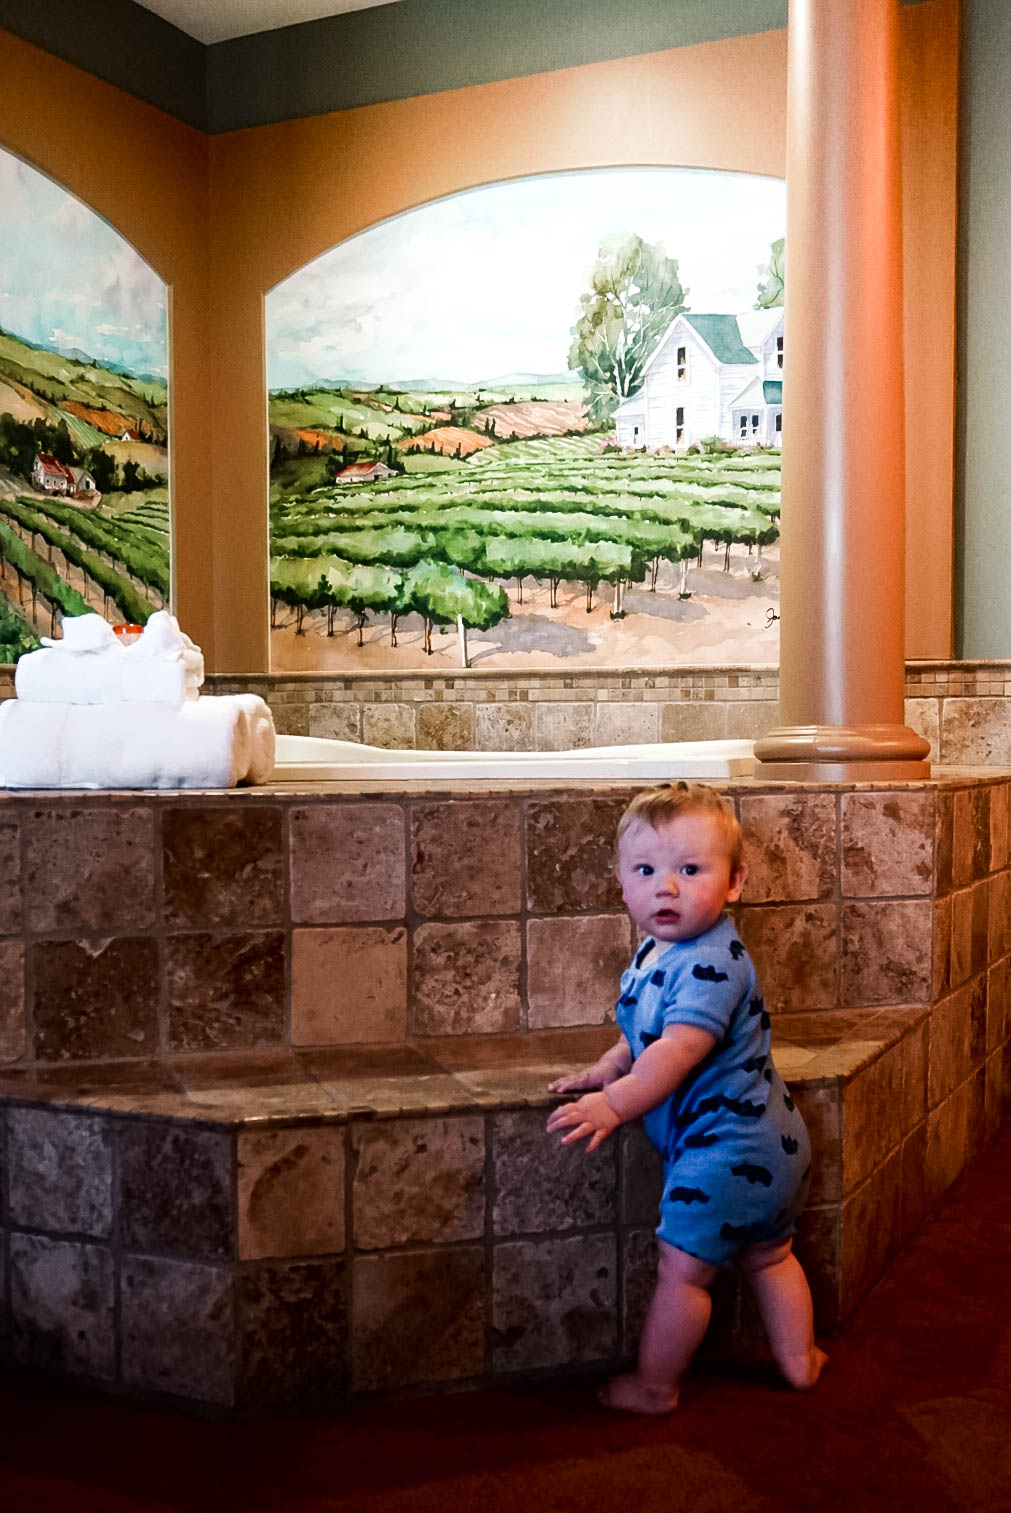 Mini Vacation in Paso Robles-Visit Paso Robles-Wine Country-La Bellasera Hotel and Suites-Bijou on the Park-Have Need Want Travels 14